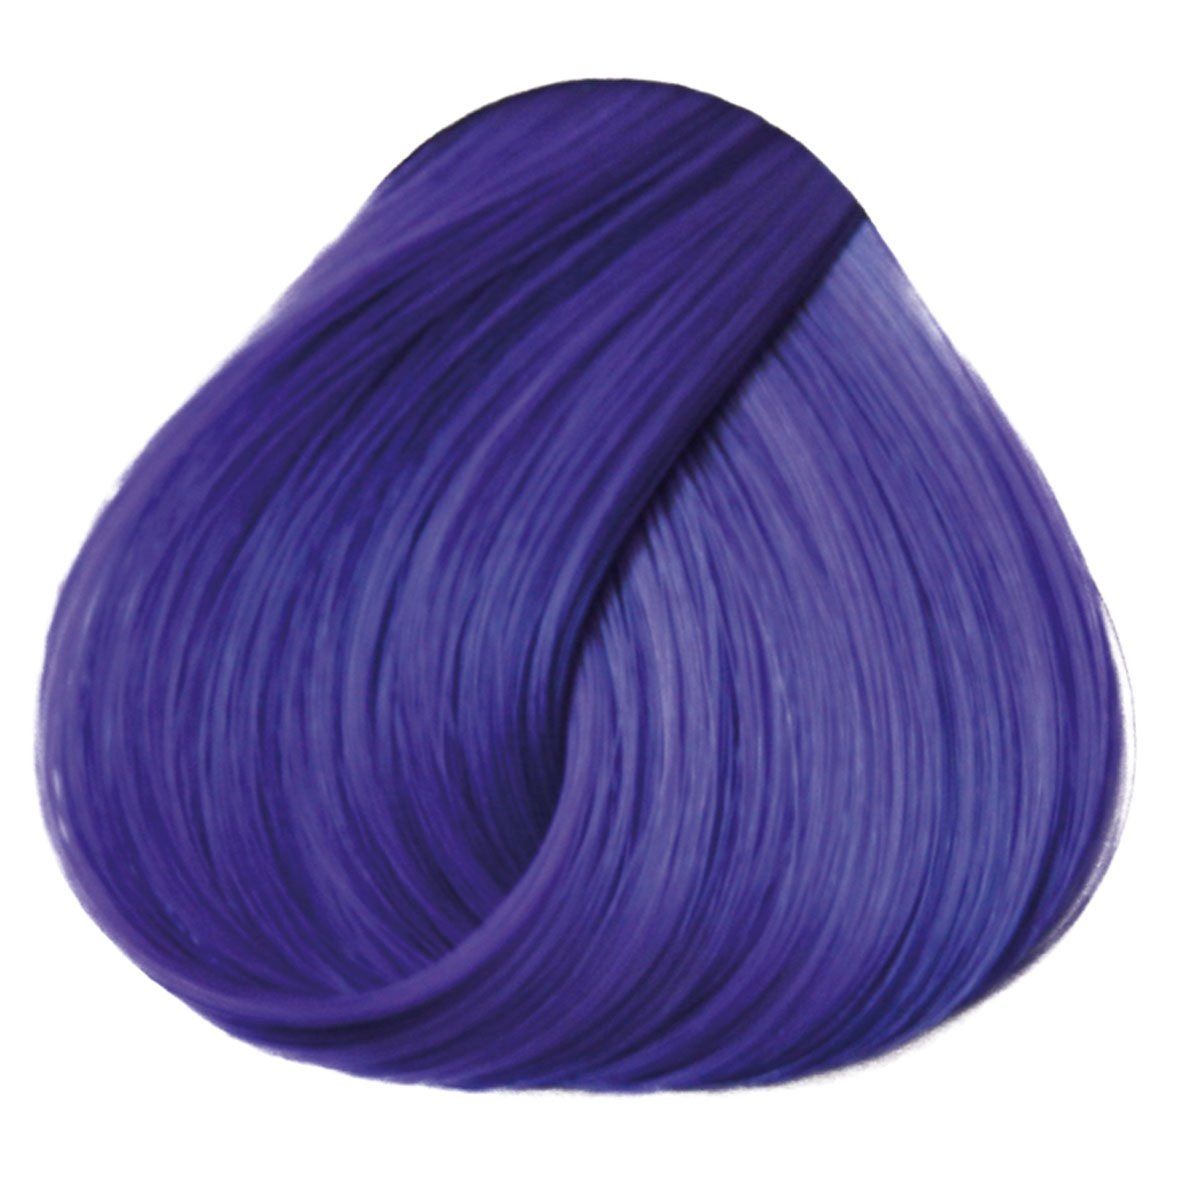 Hair Cult: Going Pastel photo 11